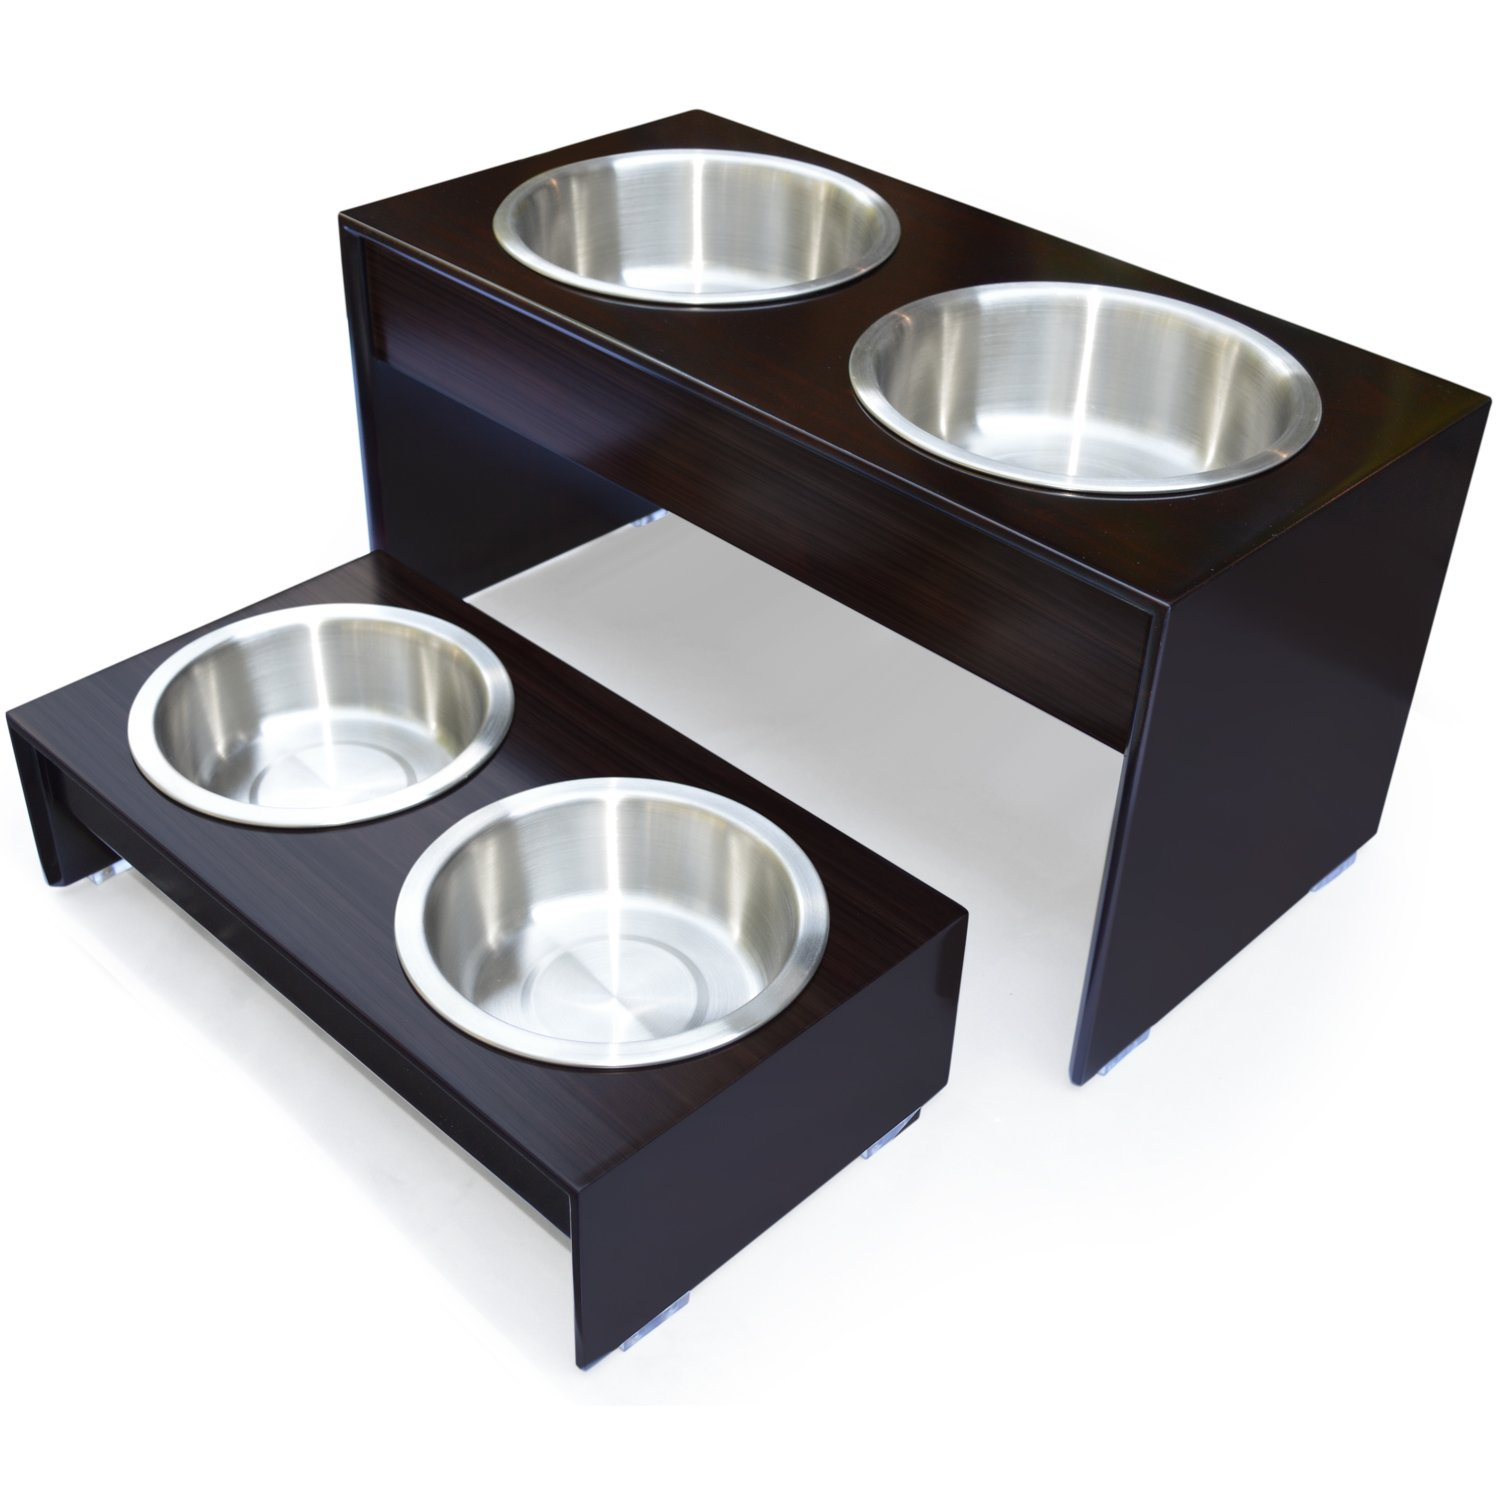 PetFusion Elevated Dog Bowls in Grade A New Zealand Pine (Tall 10''). Water Resistant & 2 US FOOD GRADE Stainless Steel 56oz bowls